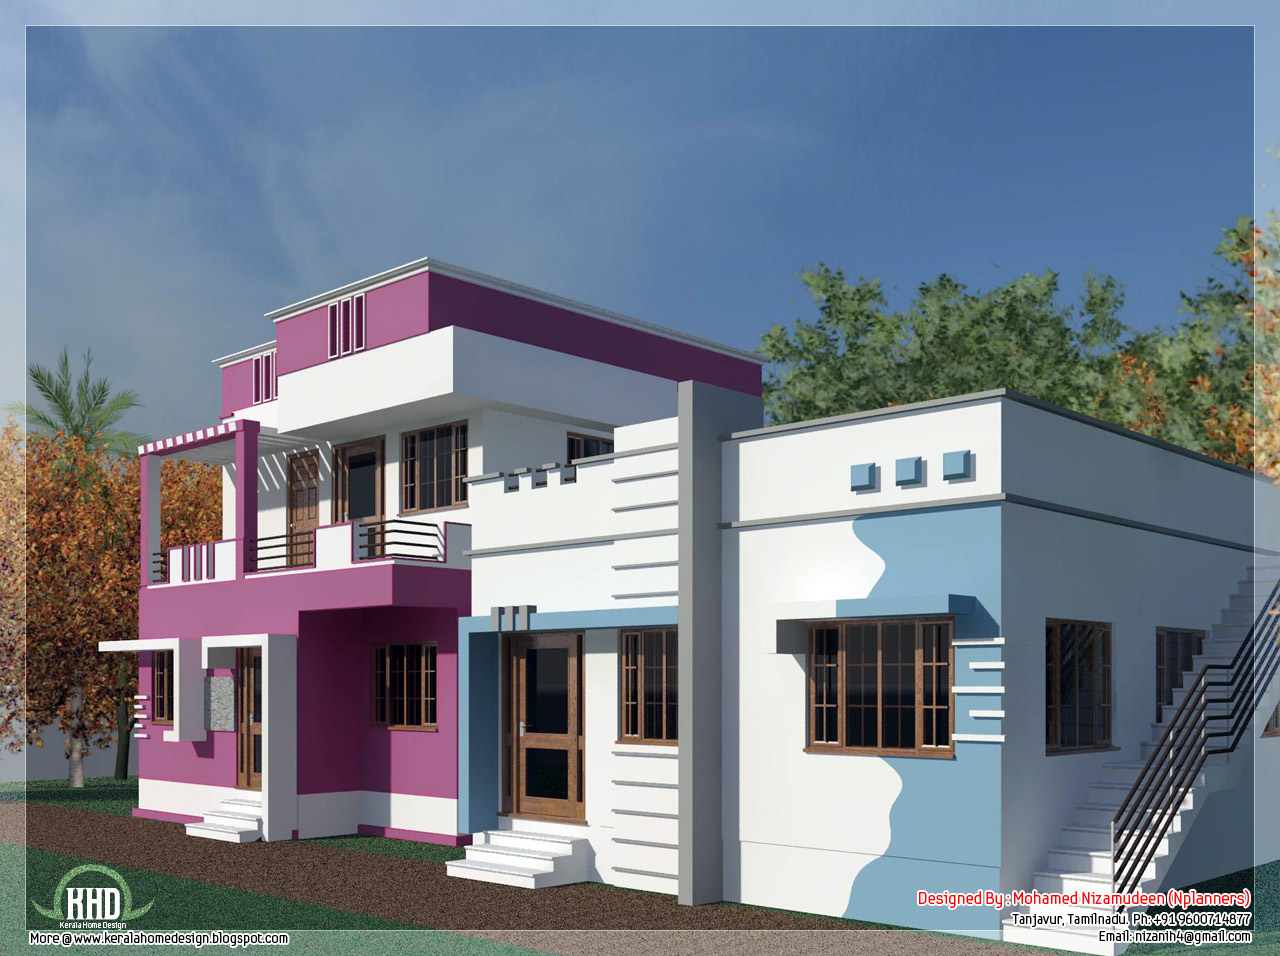 Tamilnadu Model Home Design In 3000 Indian House